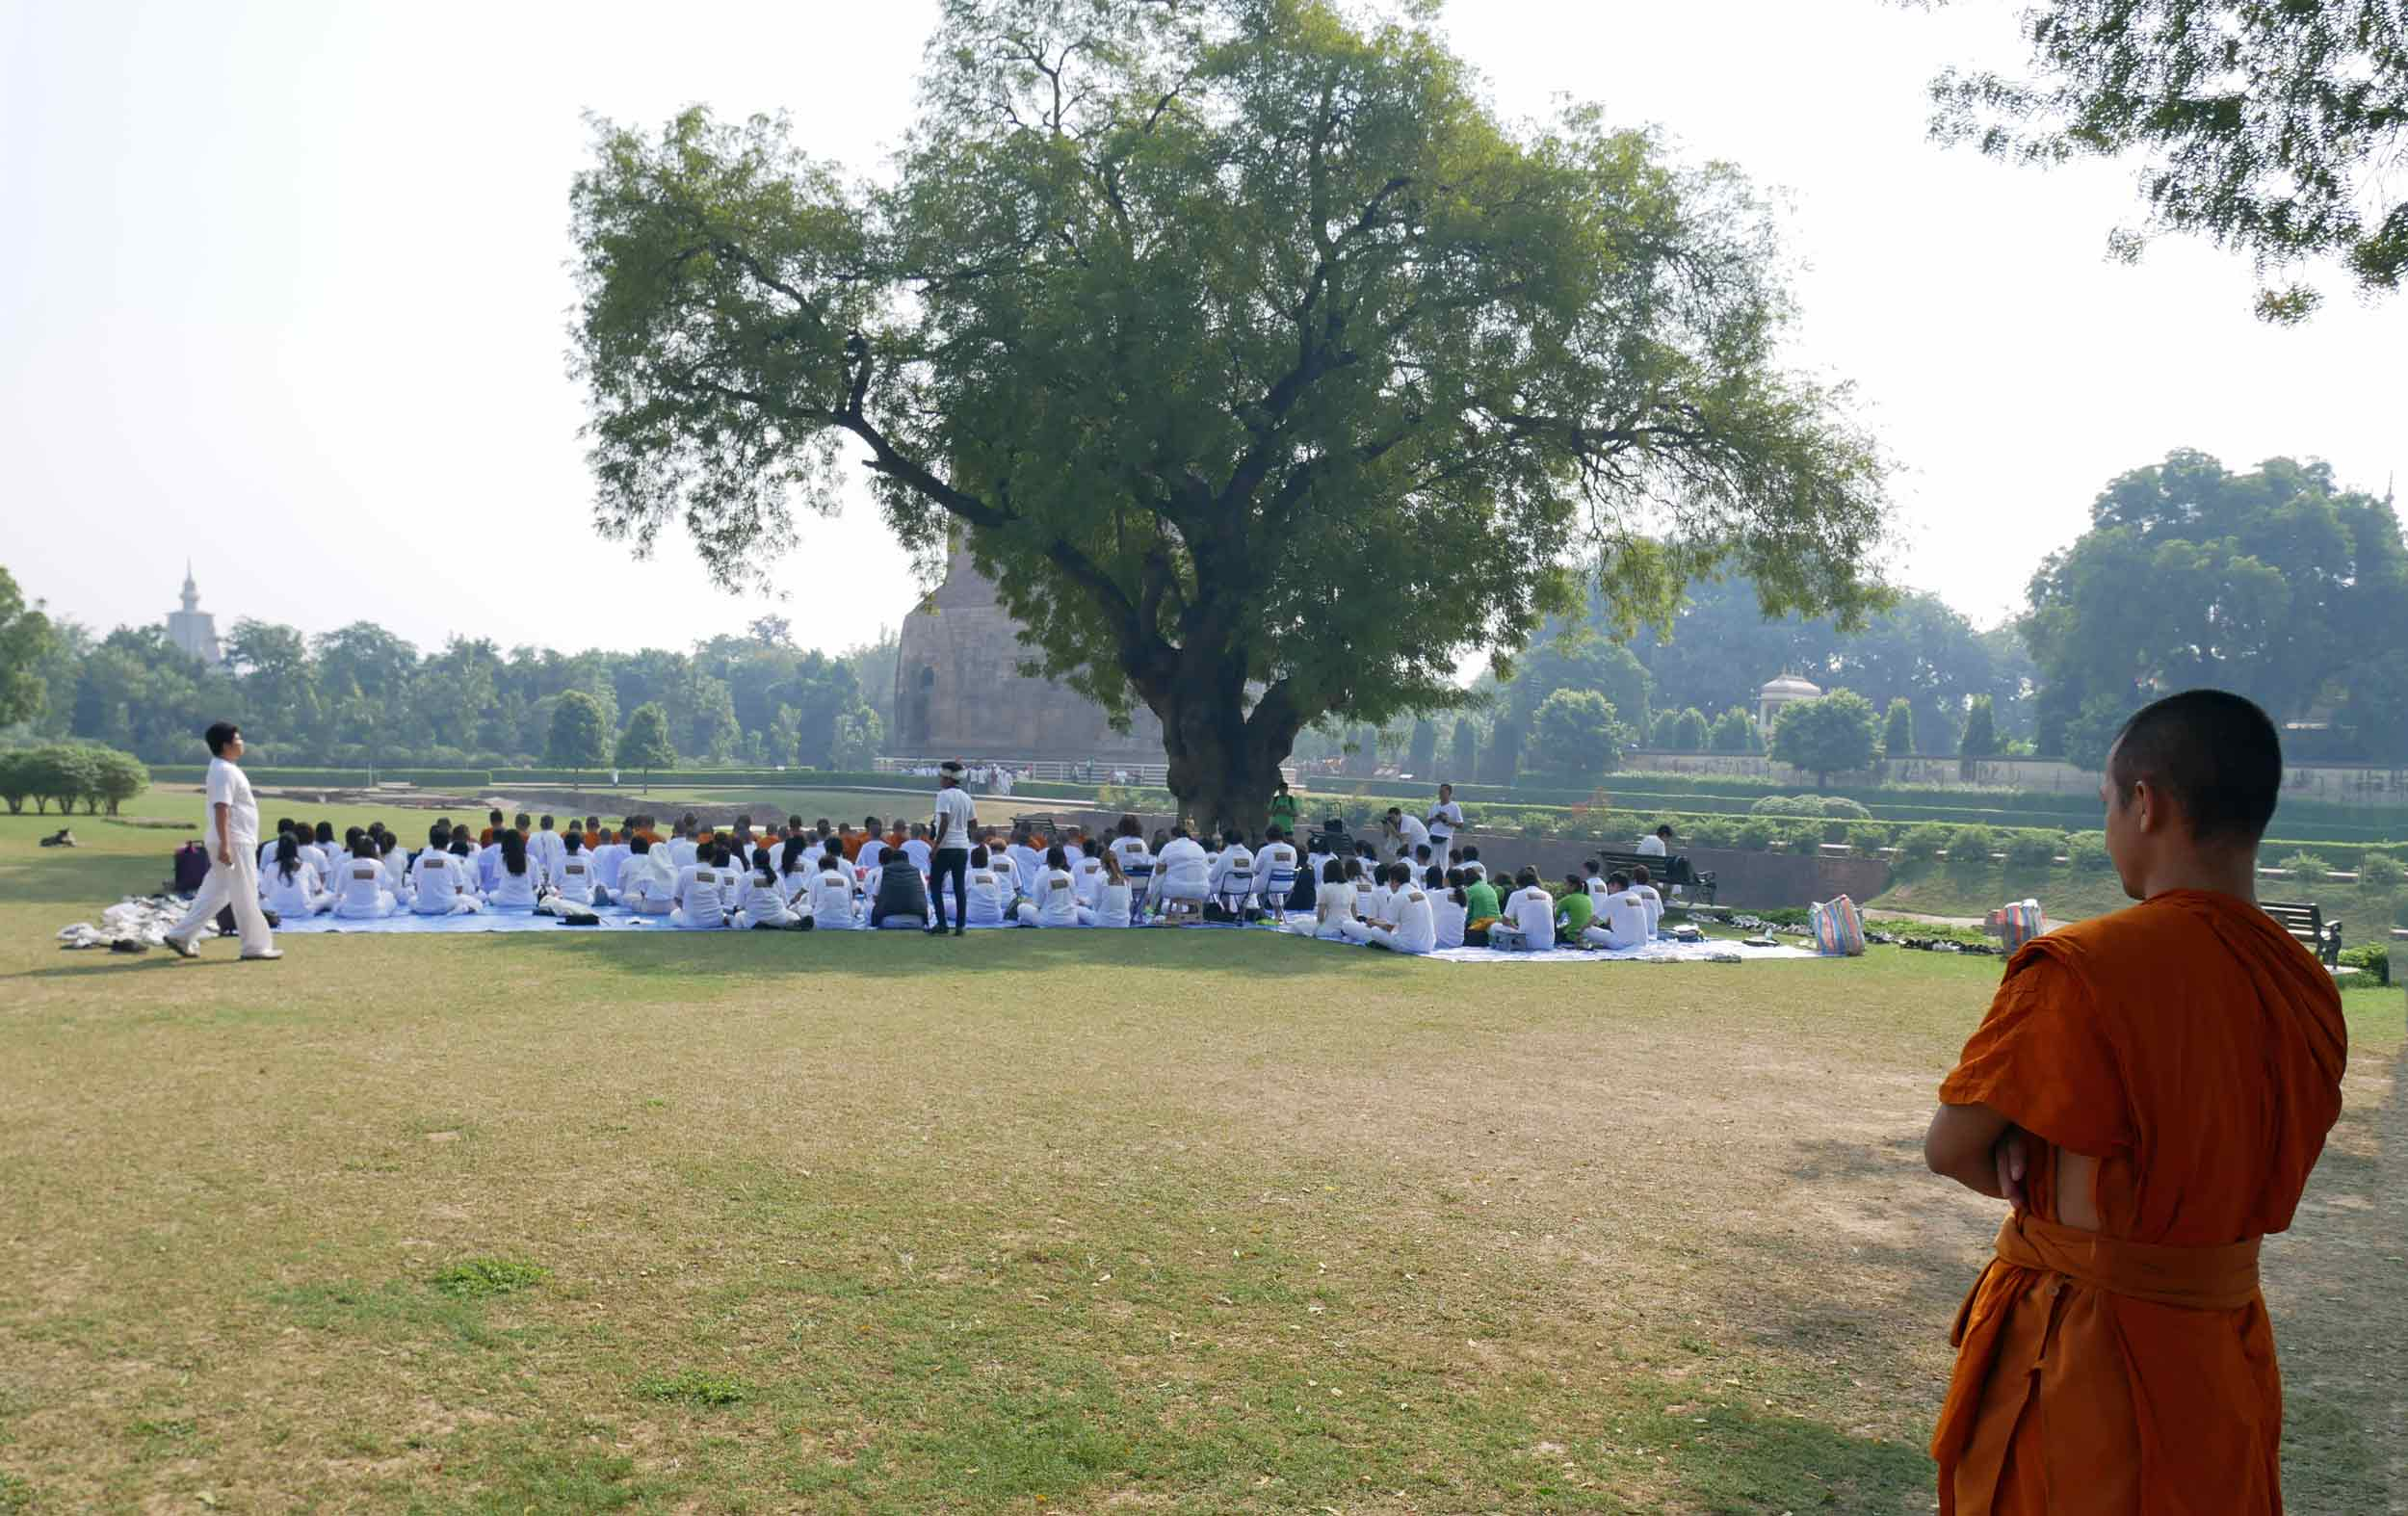 Many Buddhist devotees make the pilgrimage to Sarnath from all over the world to listen to teachings on this holy site.